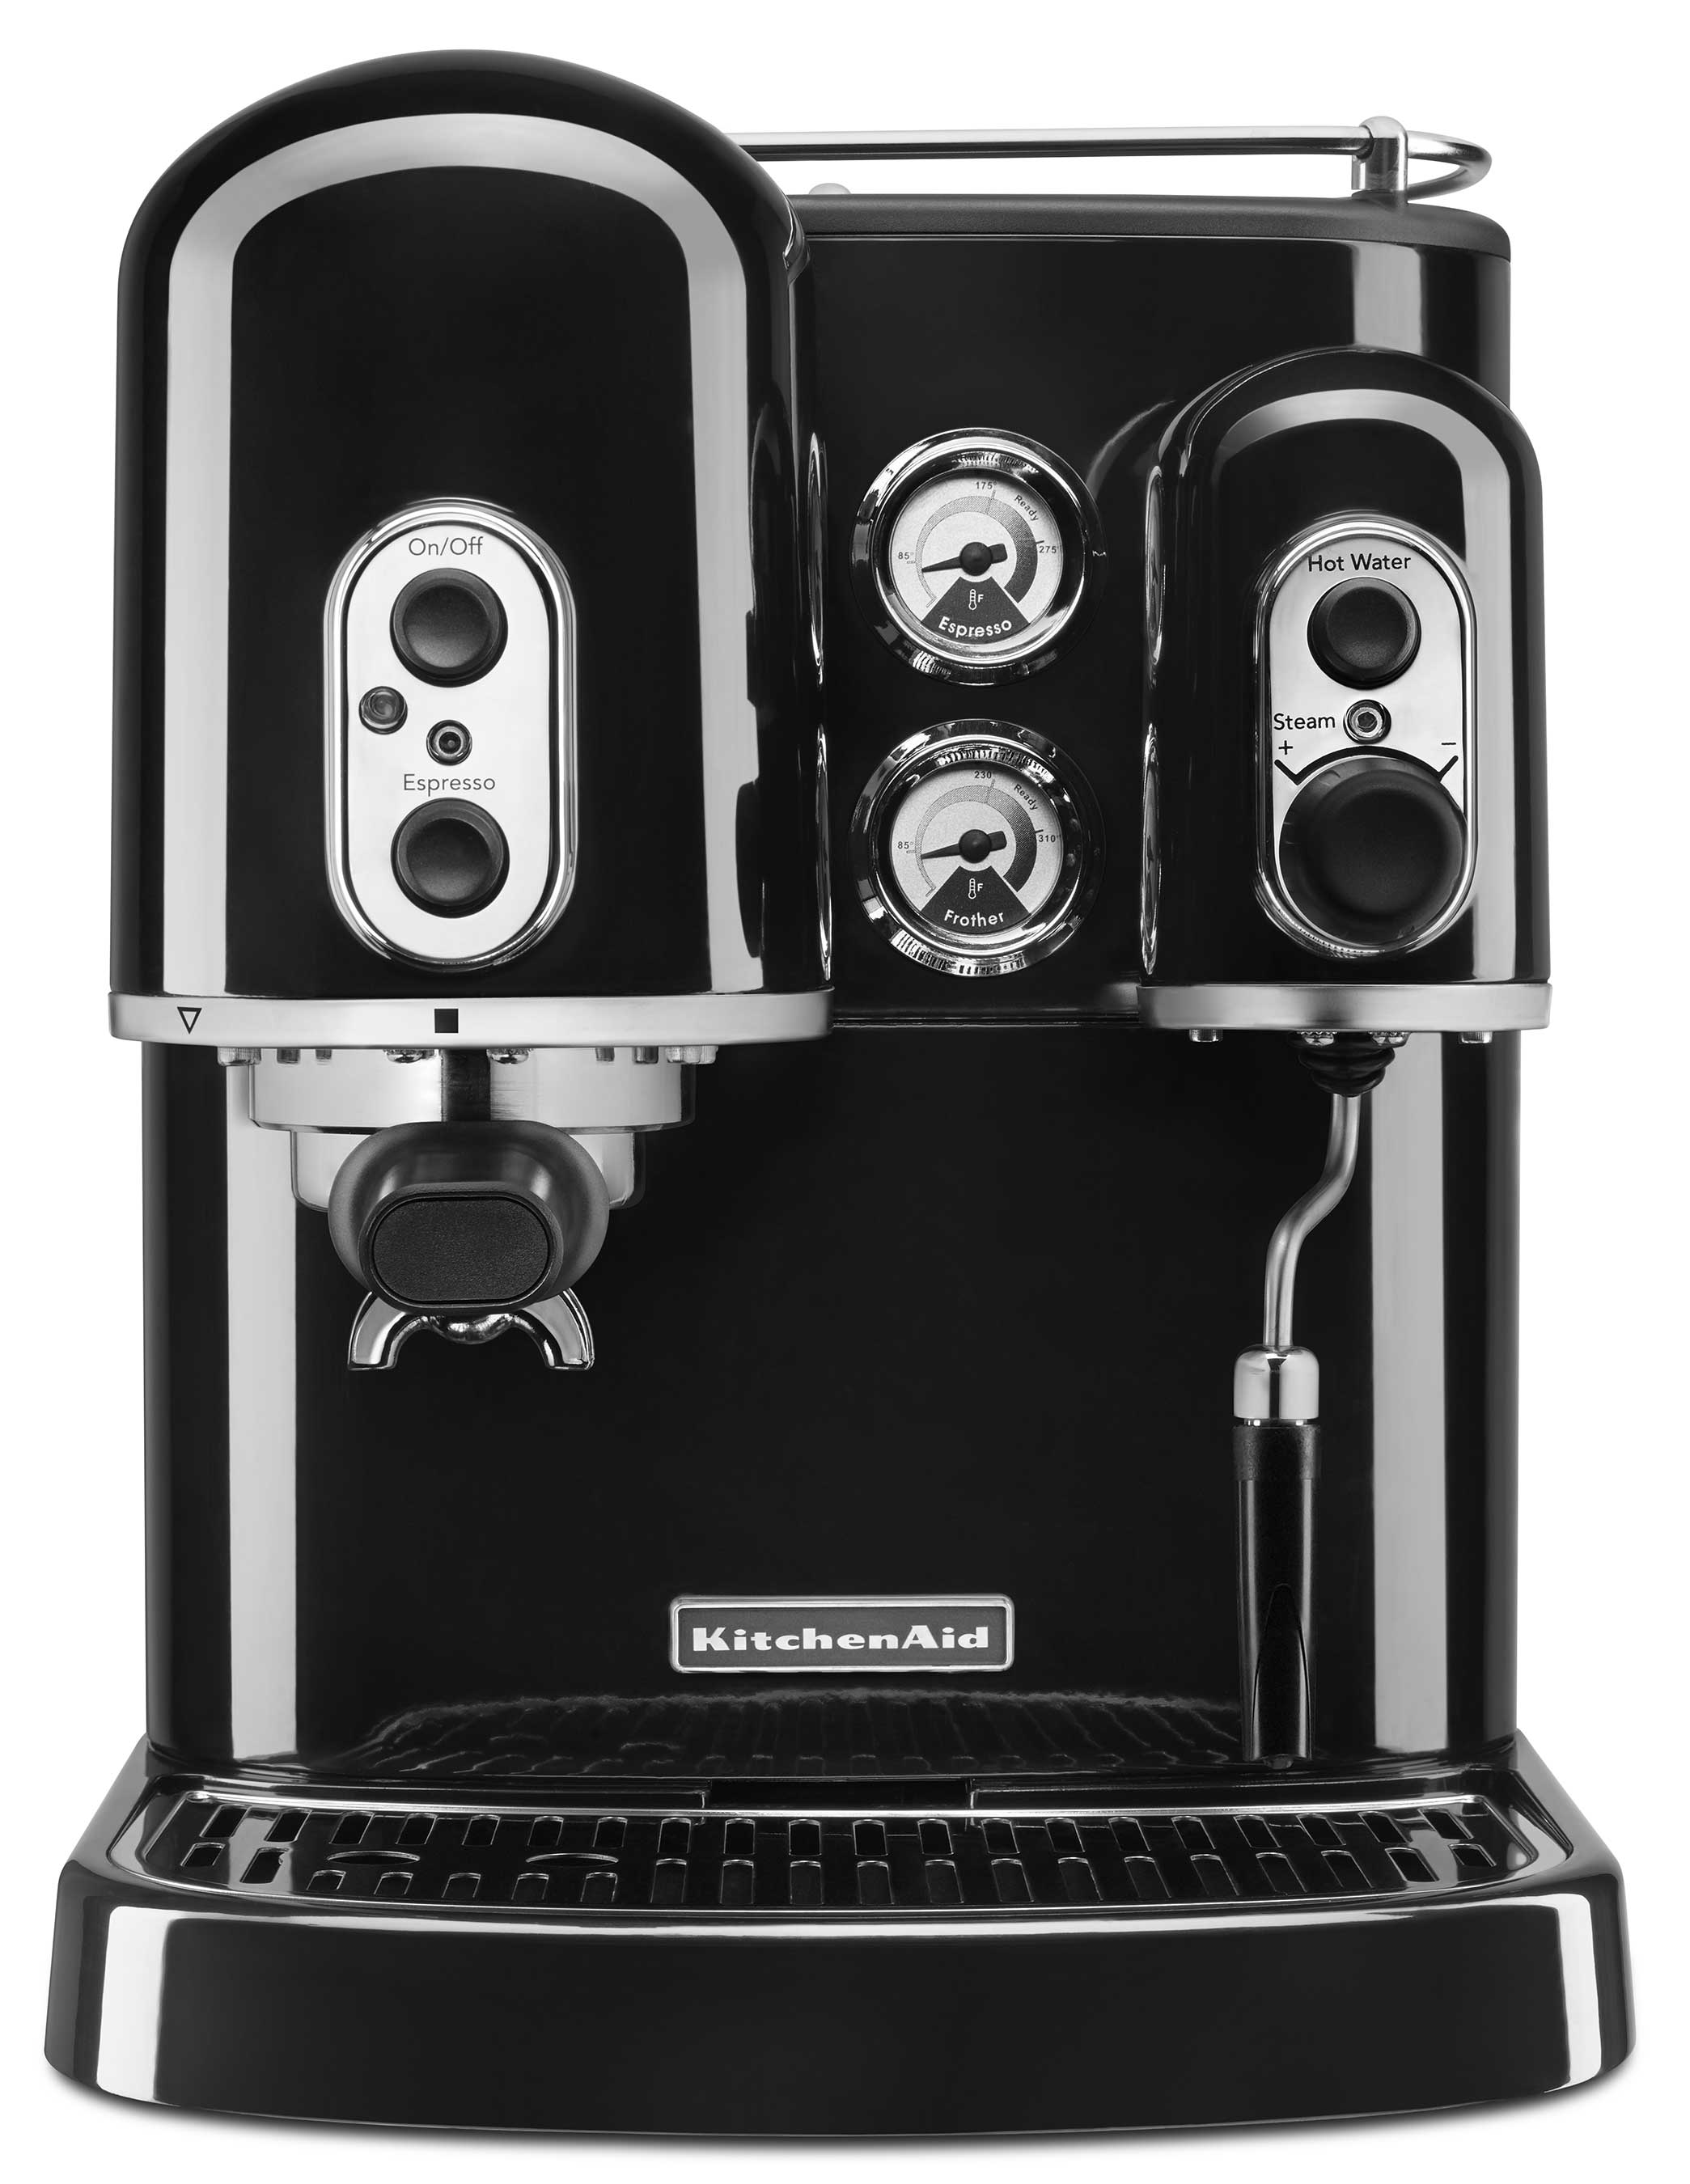 The KitchenAidR Pro LineR Series Espresso Maker Is Available Now In Candy Apple Red Empire Frosted Pearl White And Onyx Black At A Suggested Retail